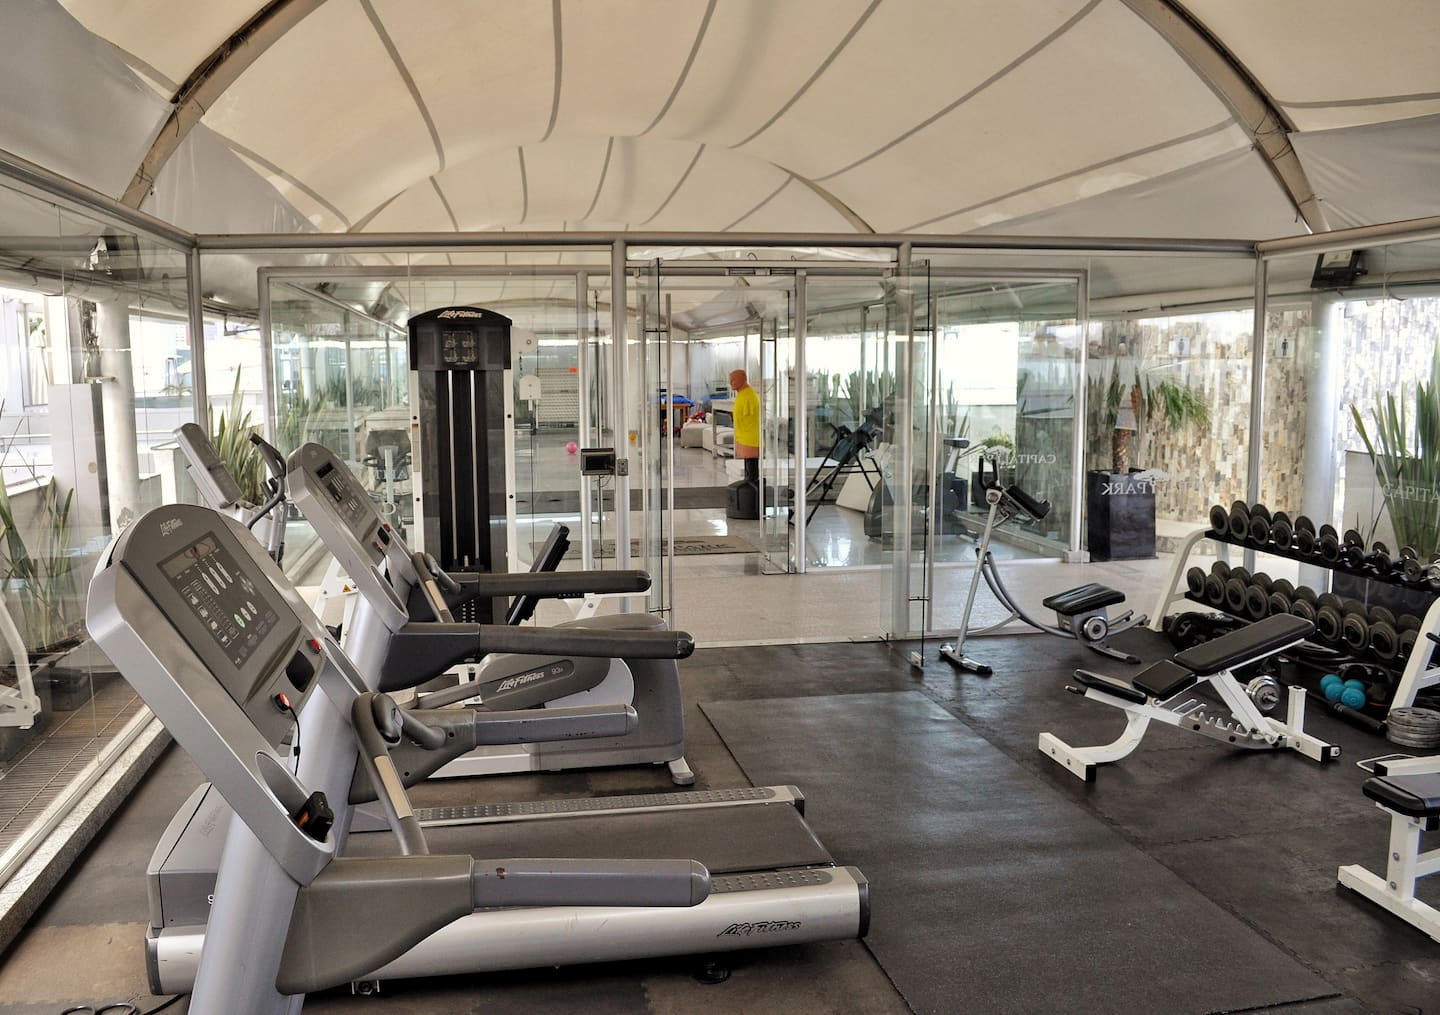 VRBO Mexico City: A gym with treadmills and free weights